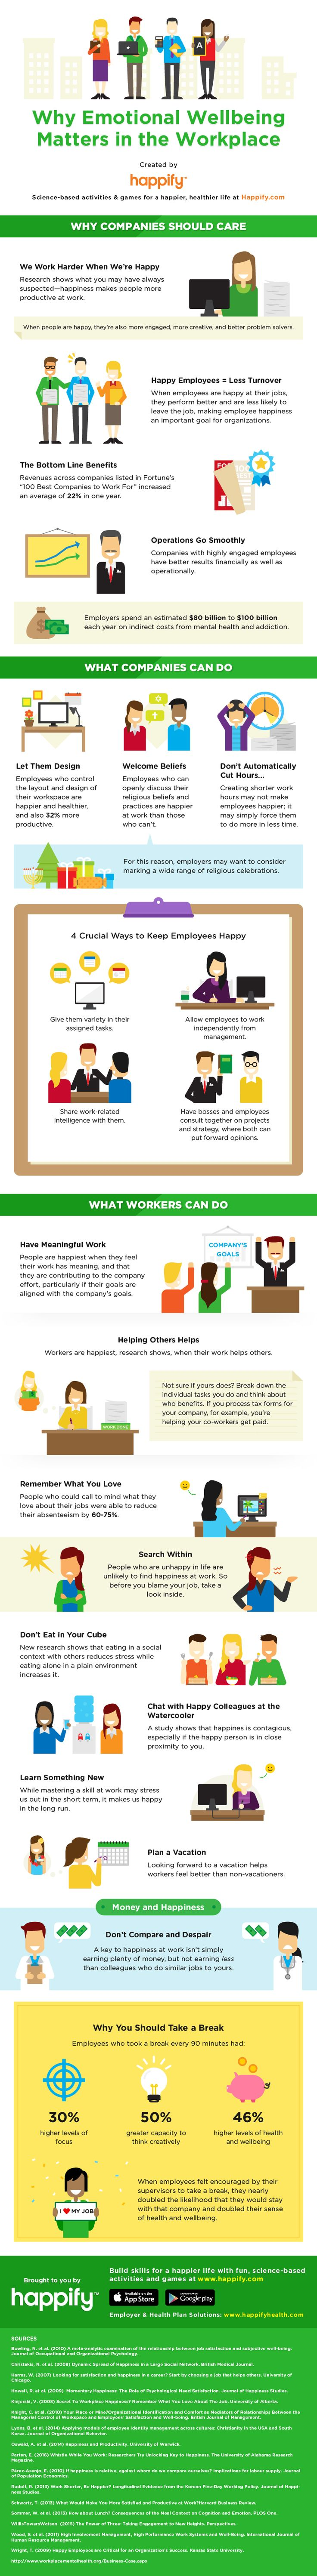 Why Emotional Wellbeing Matters In The Workplace: http://blog.hubspot.com/marketing/happiness-matters-at-work